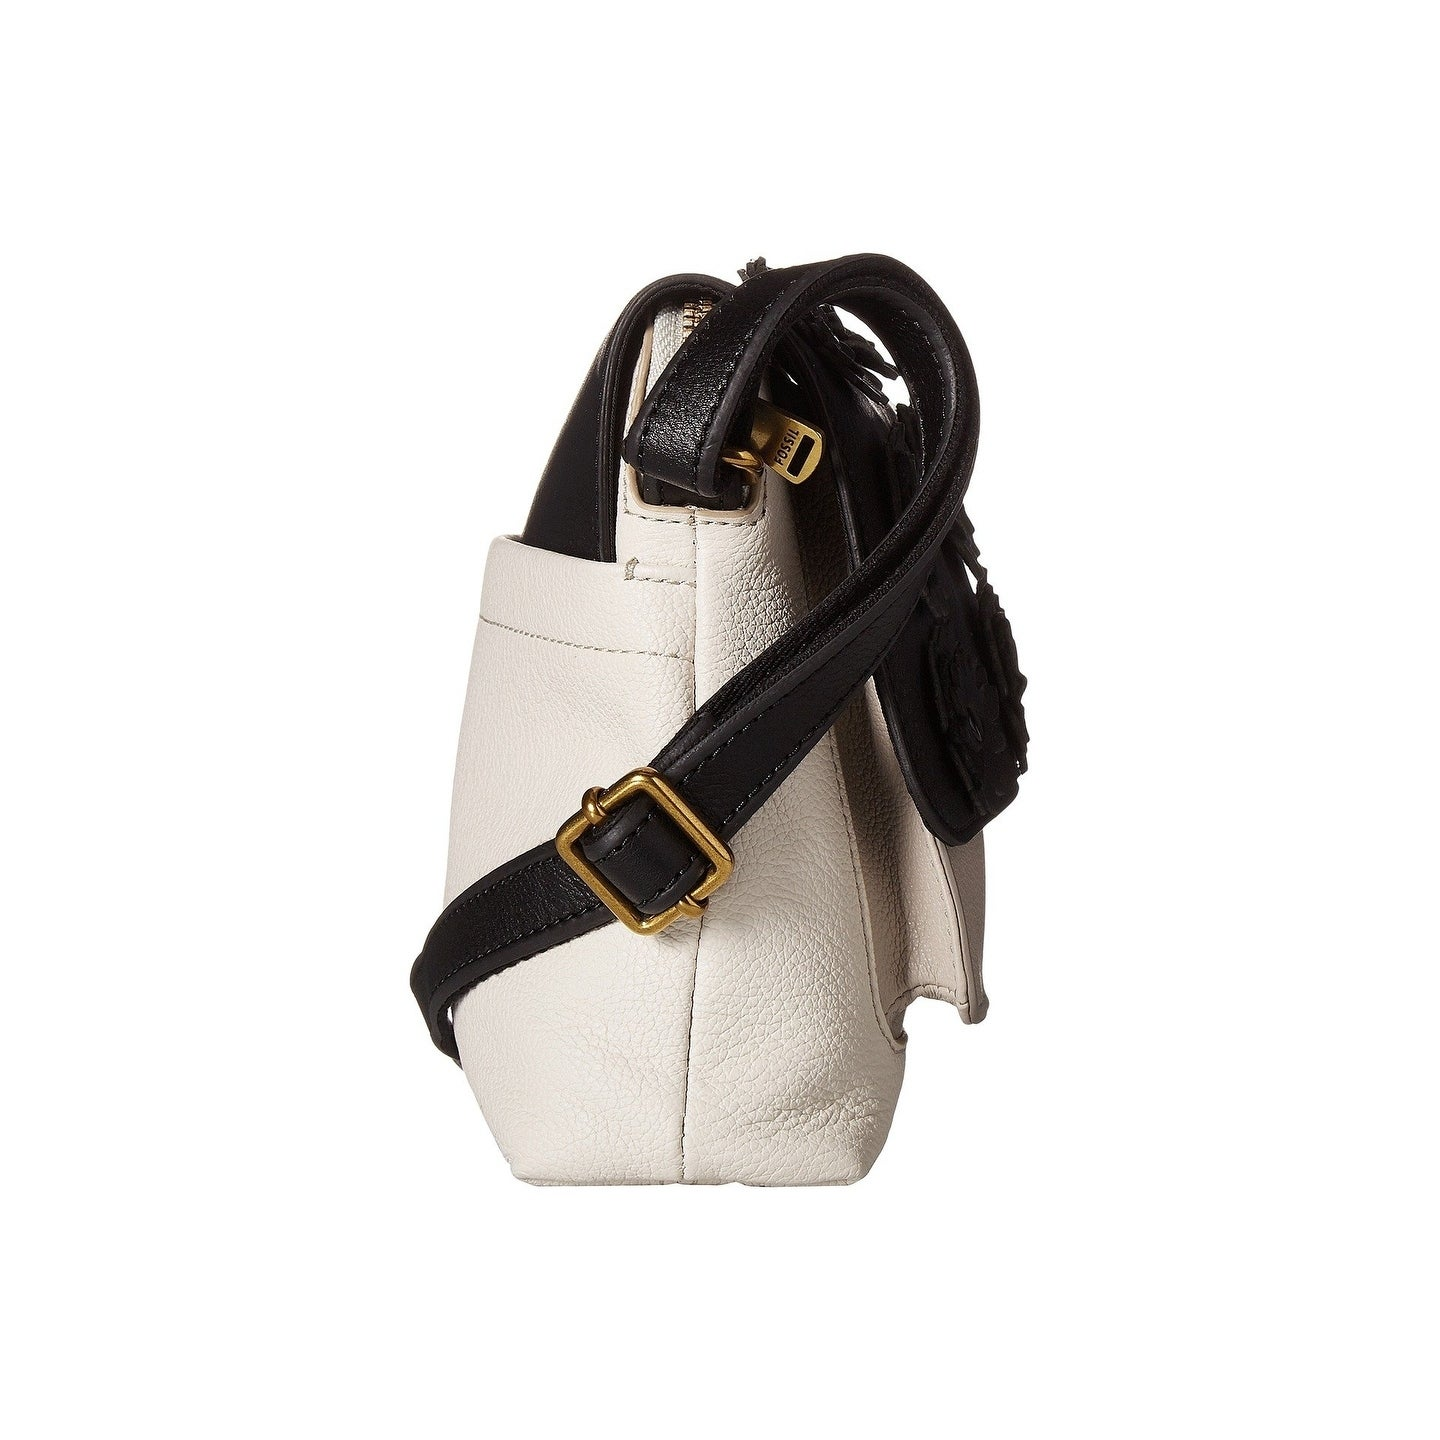 Shop Fossil Kinley Small Crossbody White Black On Sale Free Brown Shipping Today 22579332